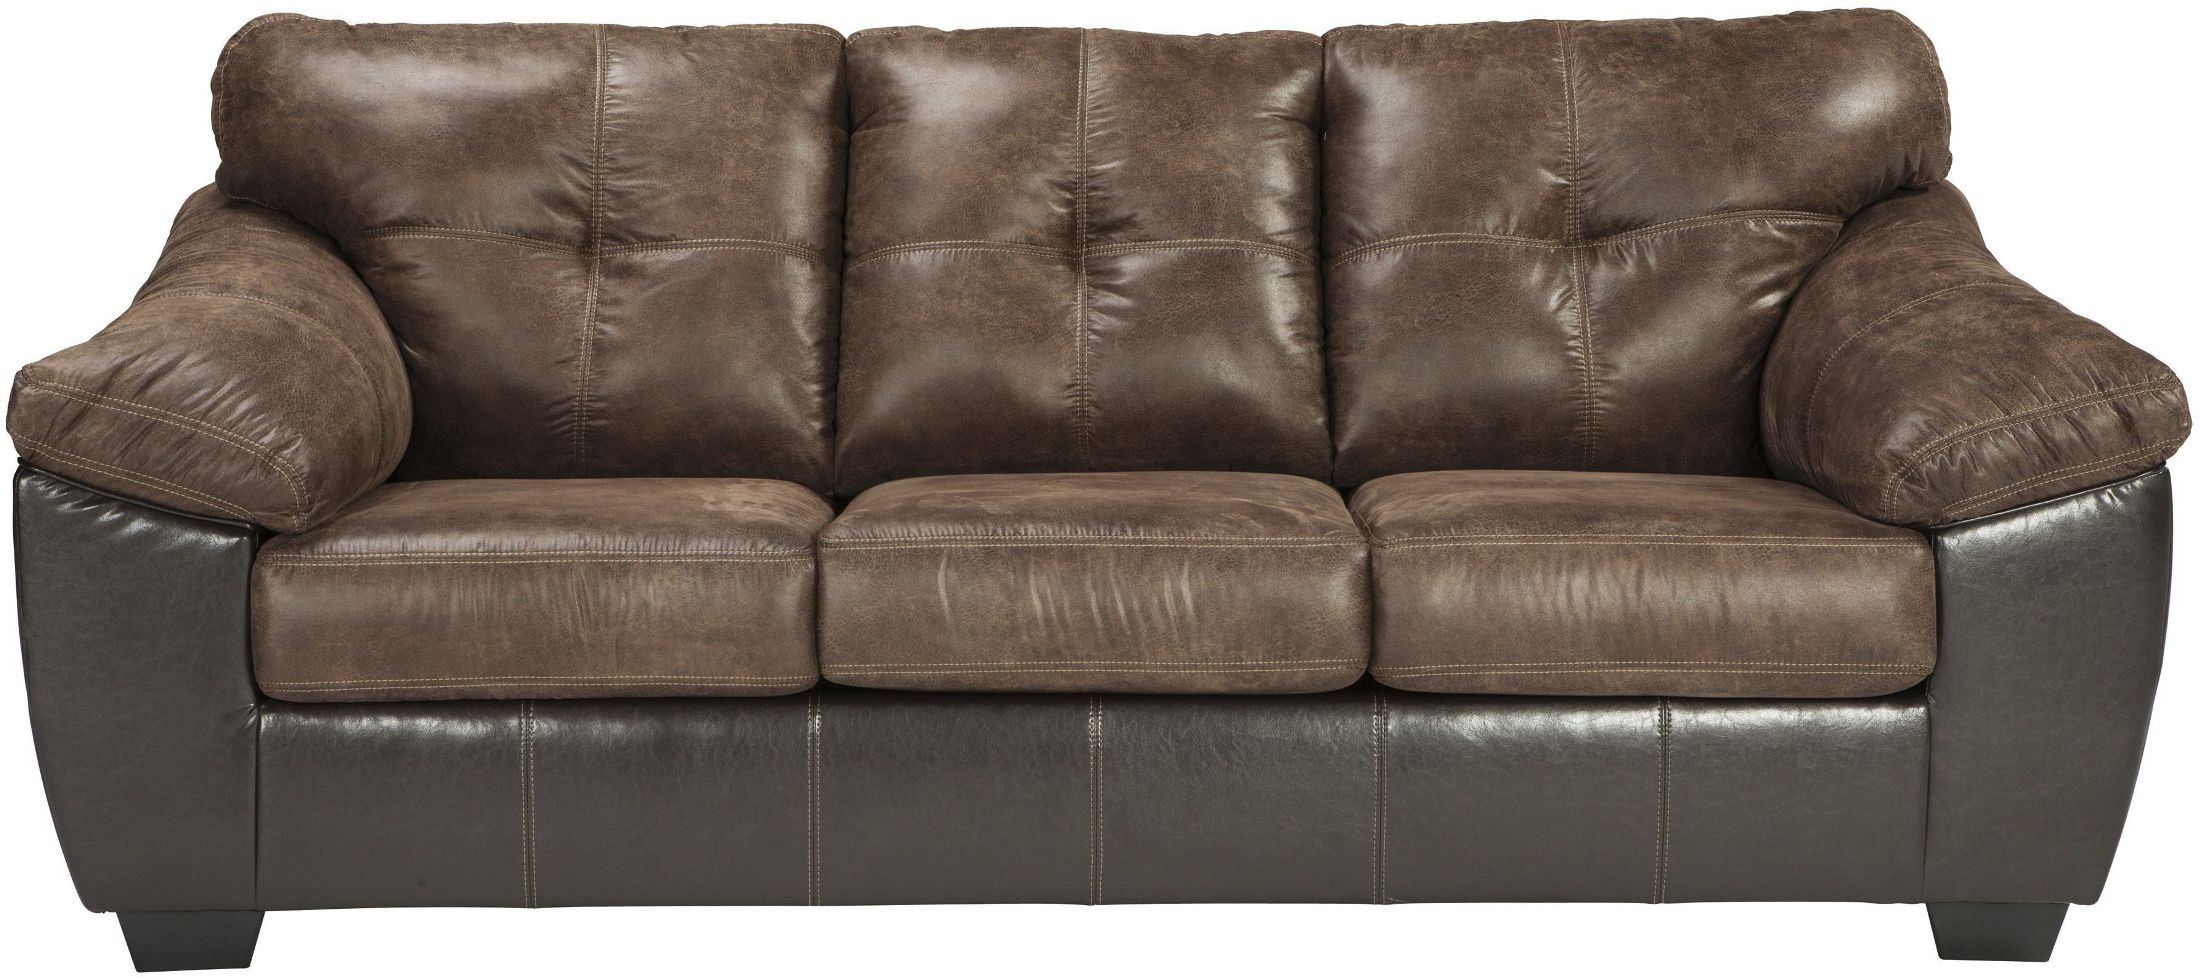 Gregale Coffee Sofa From Ashley Coleman Furniture